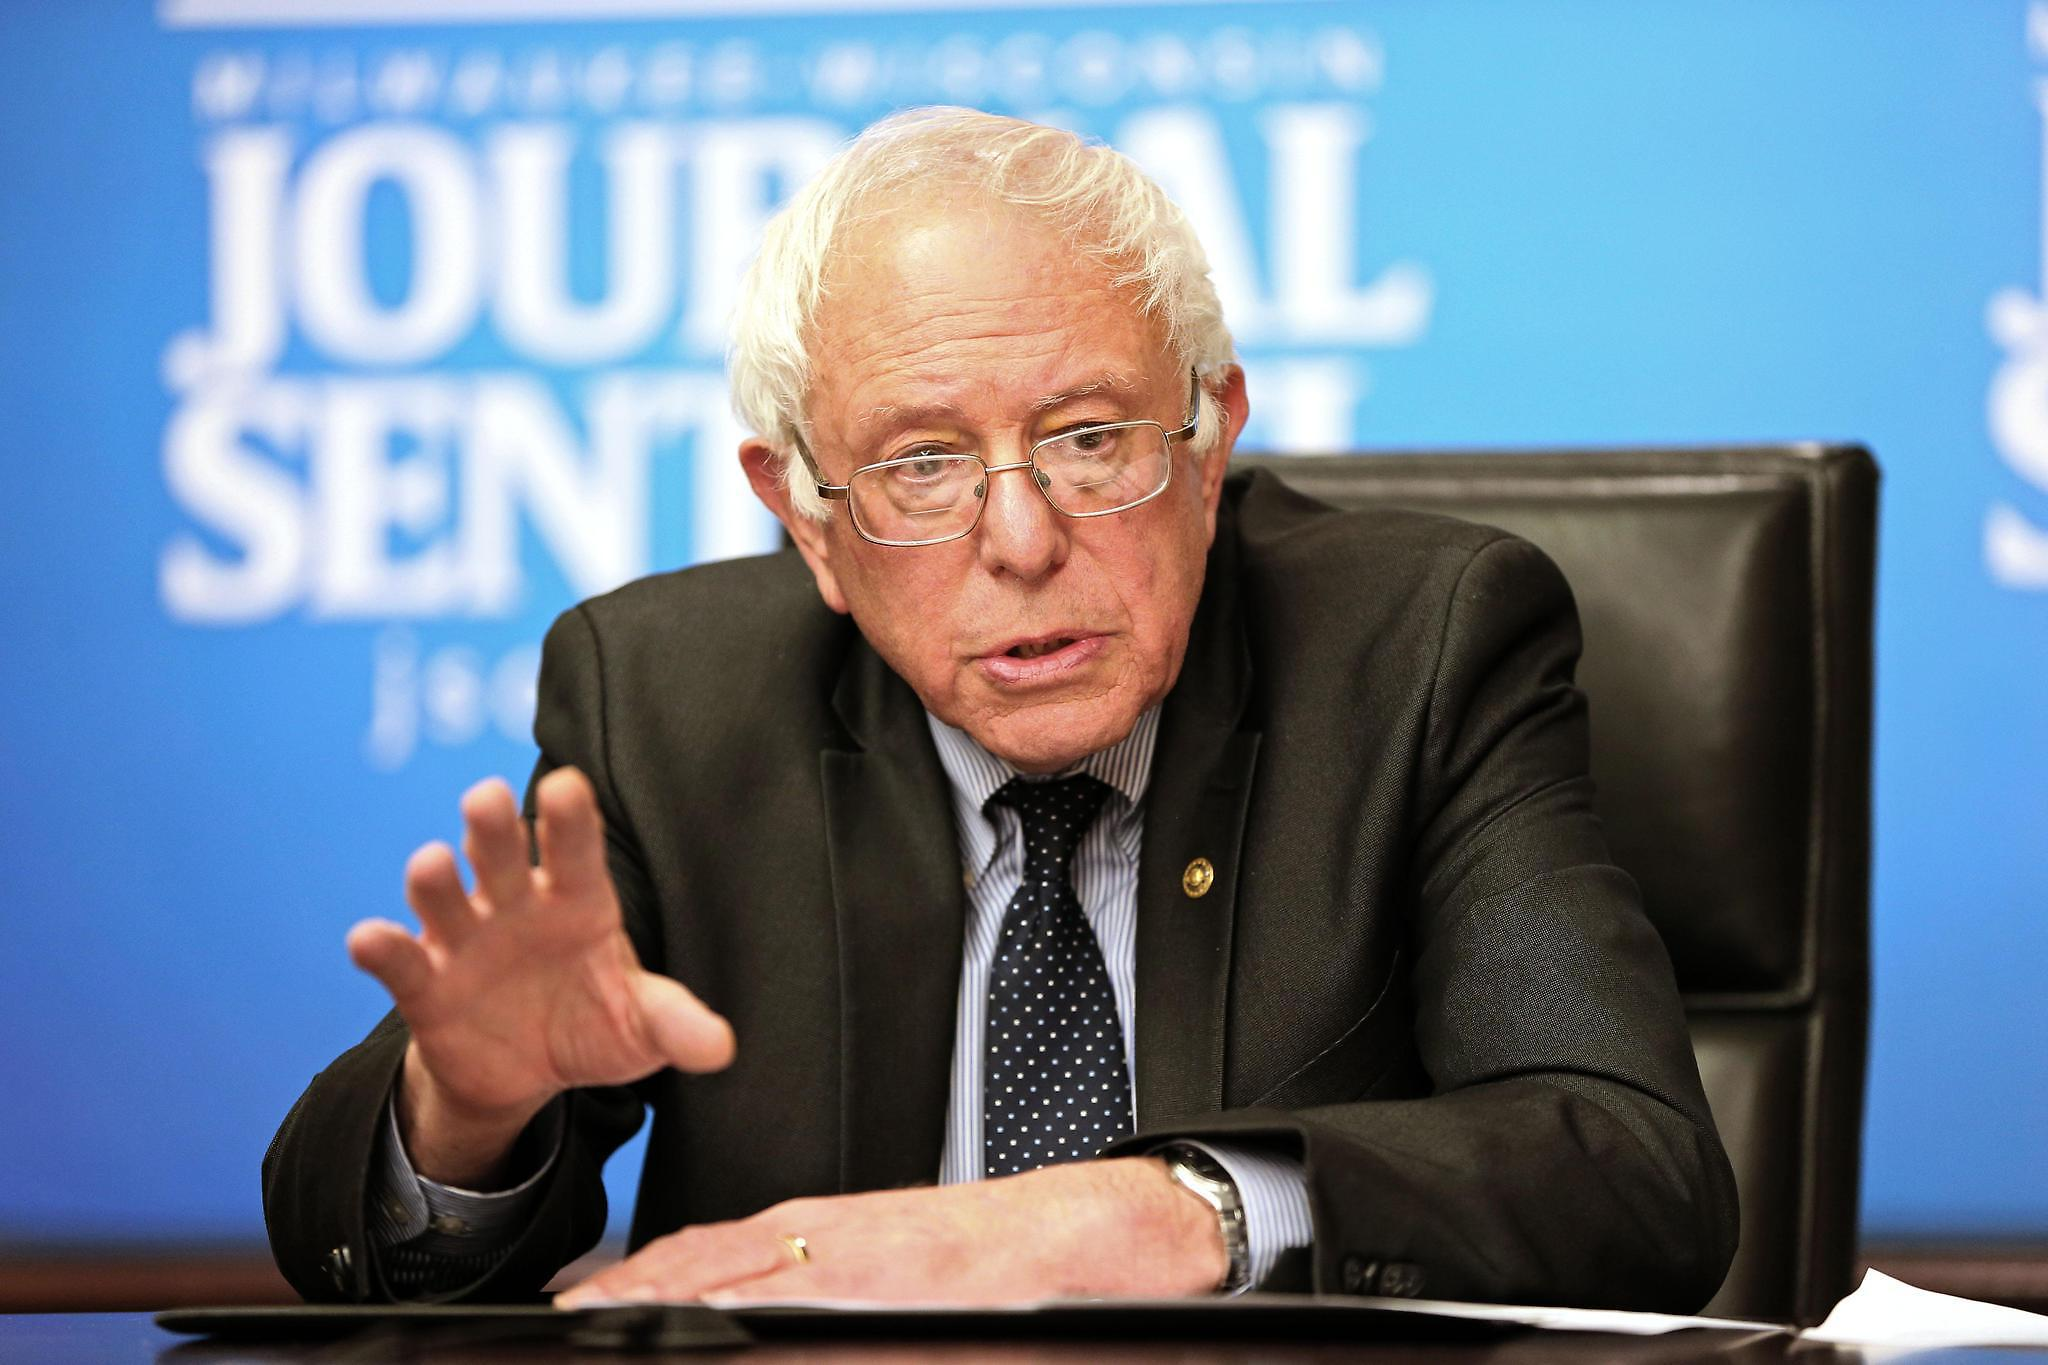 Democratic presidential candidate Bernie Sanders gained a lot of page views with a claim about inequality. (Milwaukee Journal Sentinel)